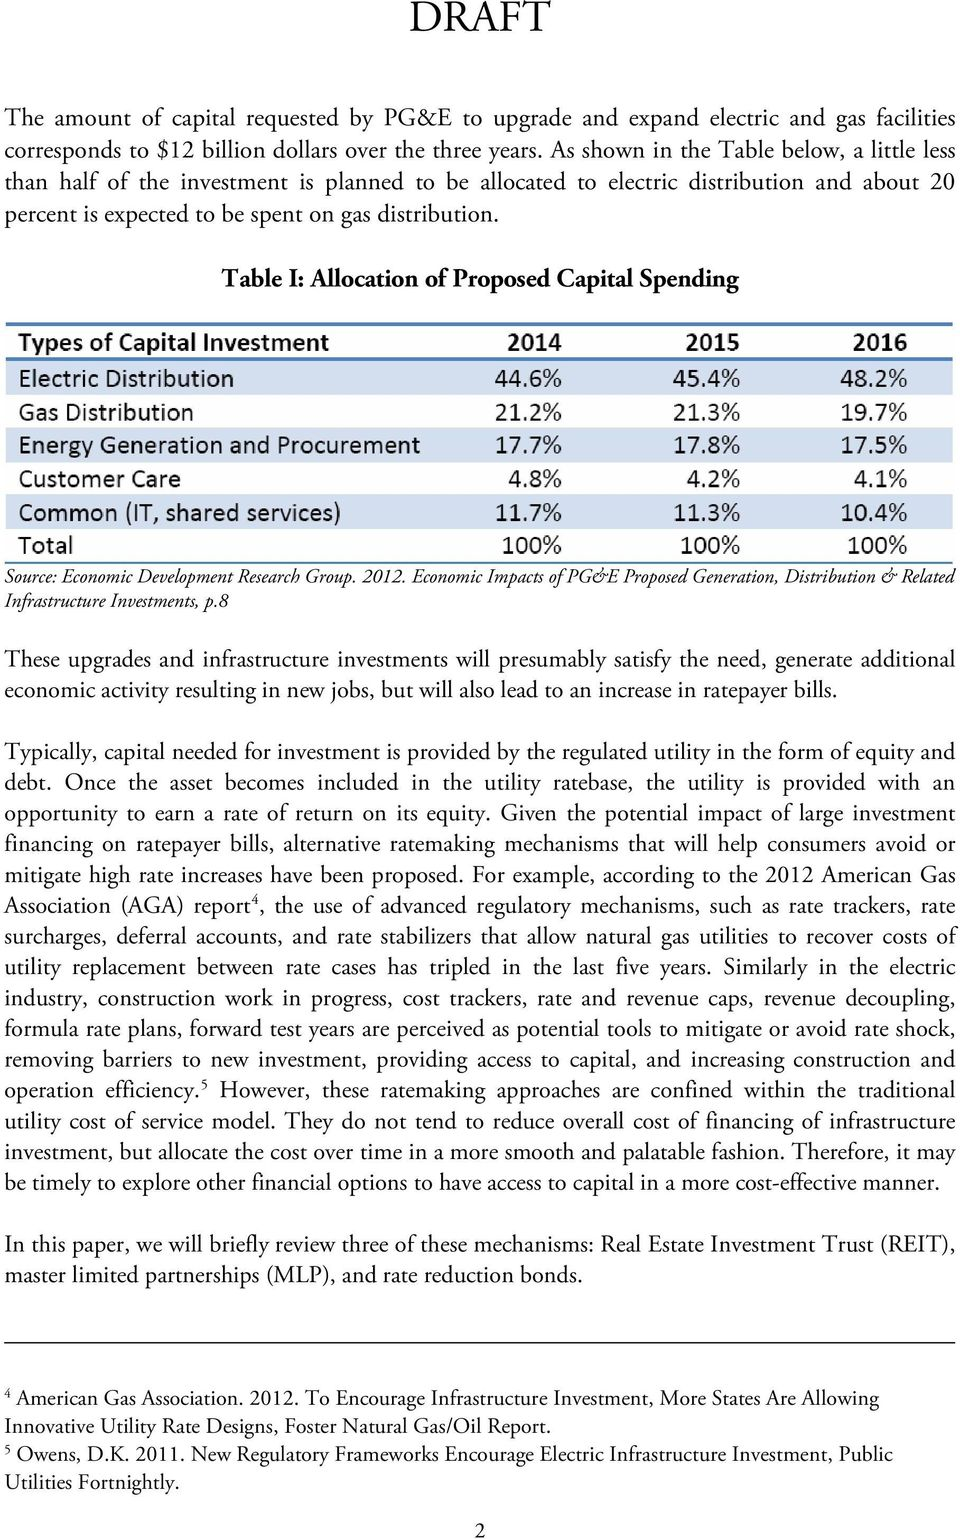 Table I: Allocation of Proposed Capital Spending Source: Economic Development Research Group. 2012. Economic Impacts of PG&E Proposed Generation, Distribution & Related Infrastructure Investments, p.